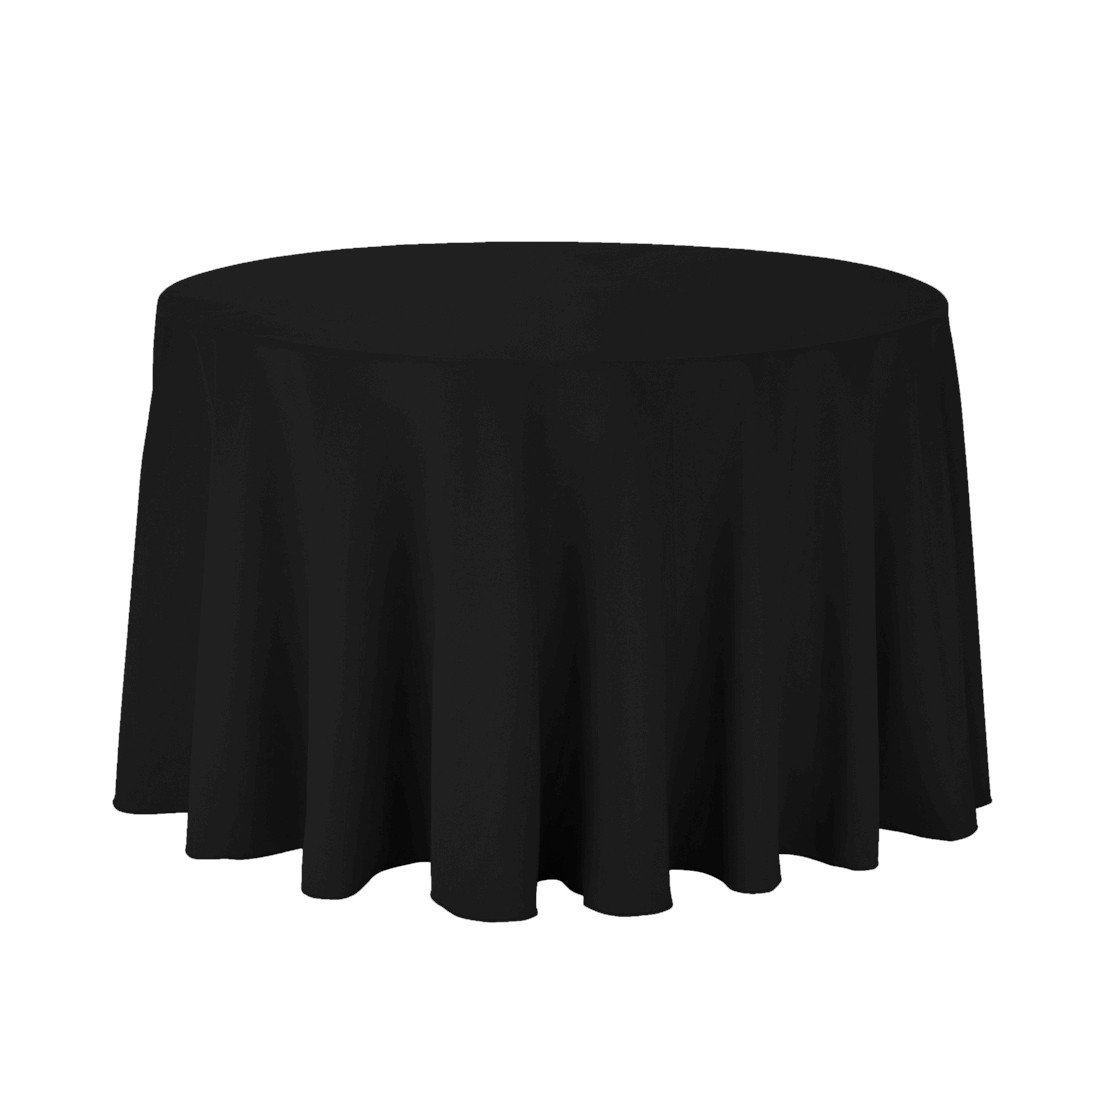 Craft and Party - 10 pcs Round Tablecloth for Home, Party, Wedding or Restaurant Use. (Black, 108'' Round)